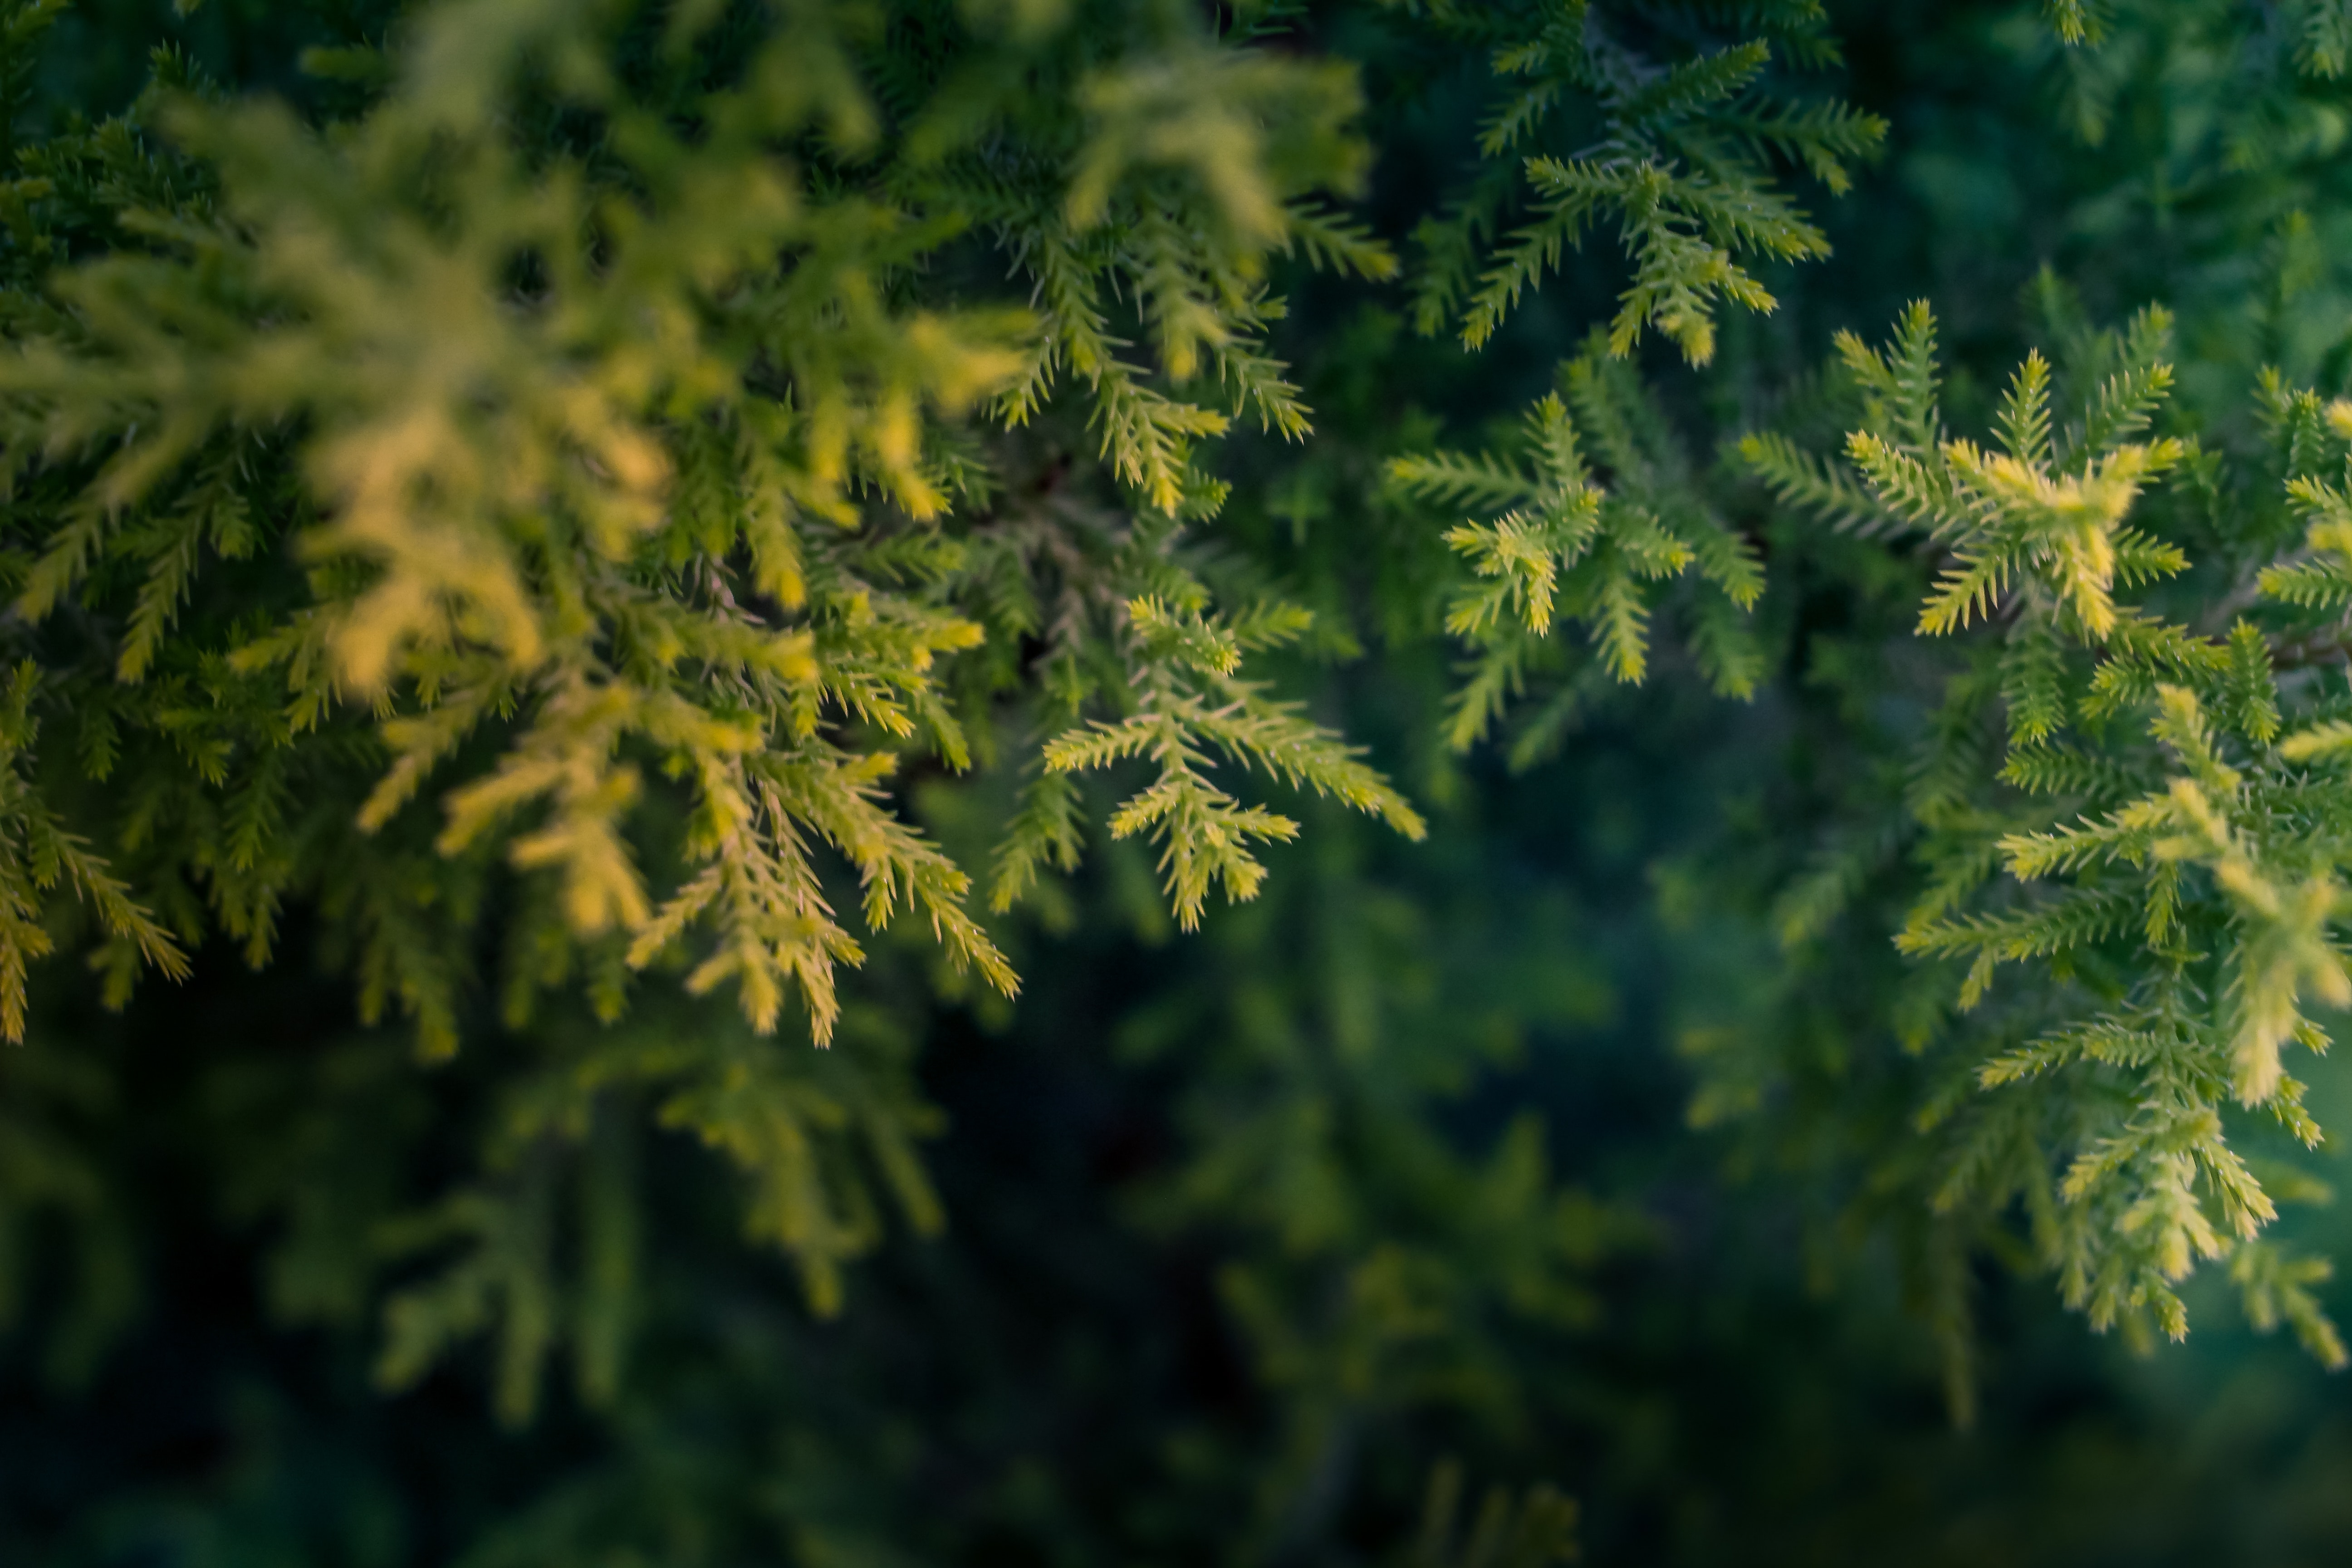 close-up-pine-tree